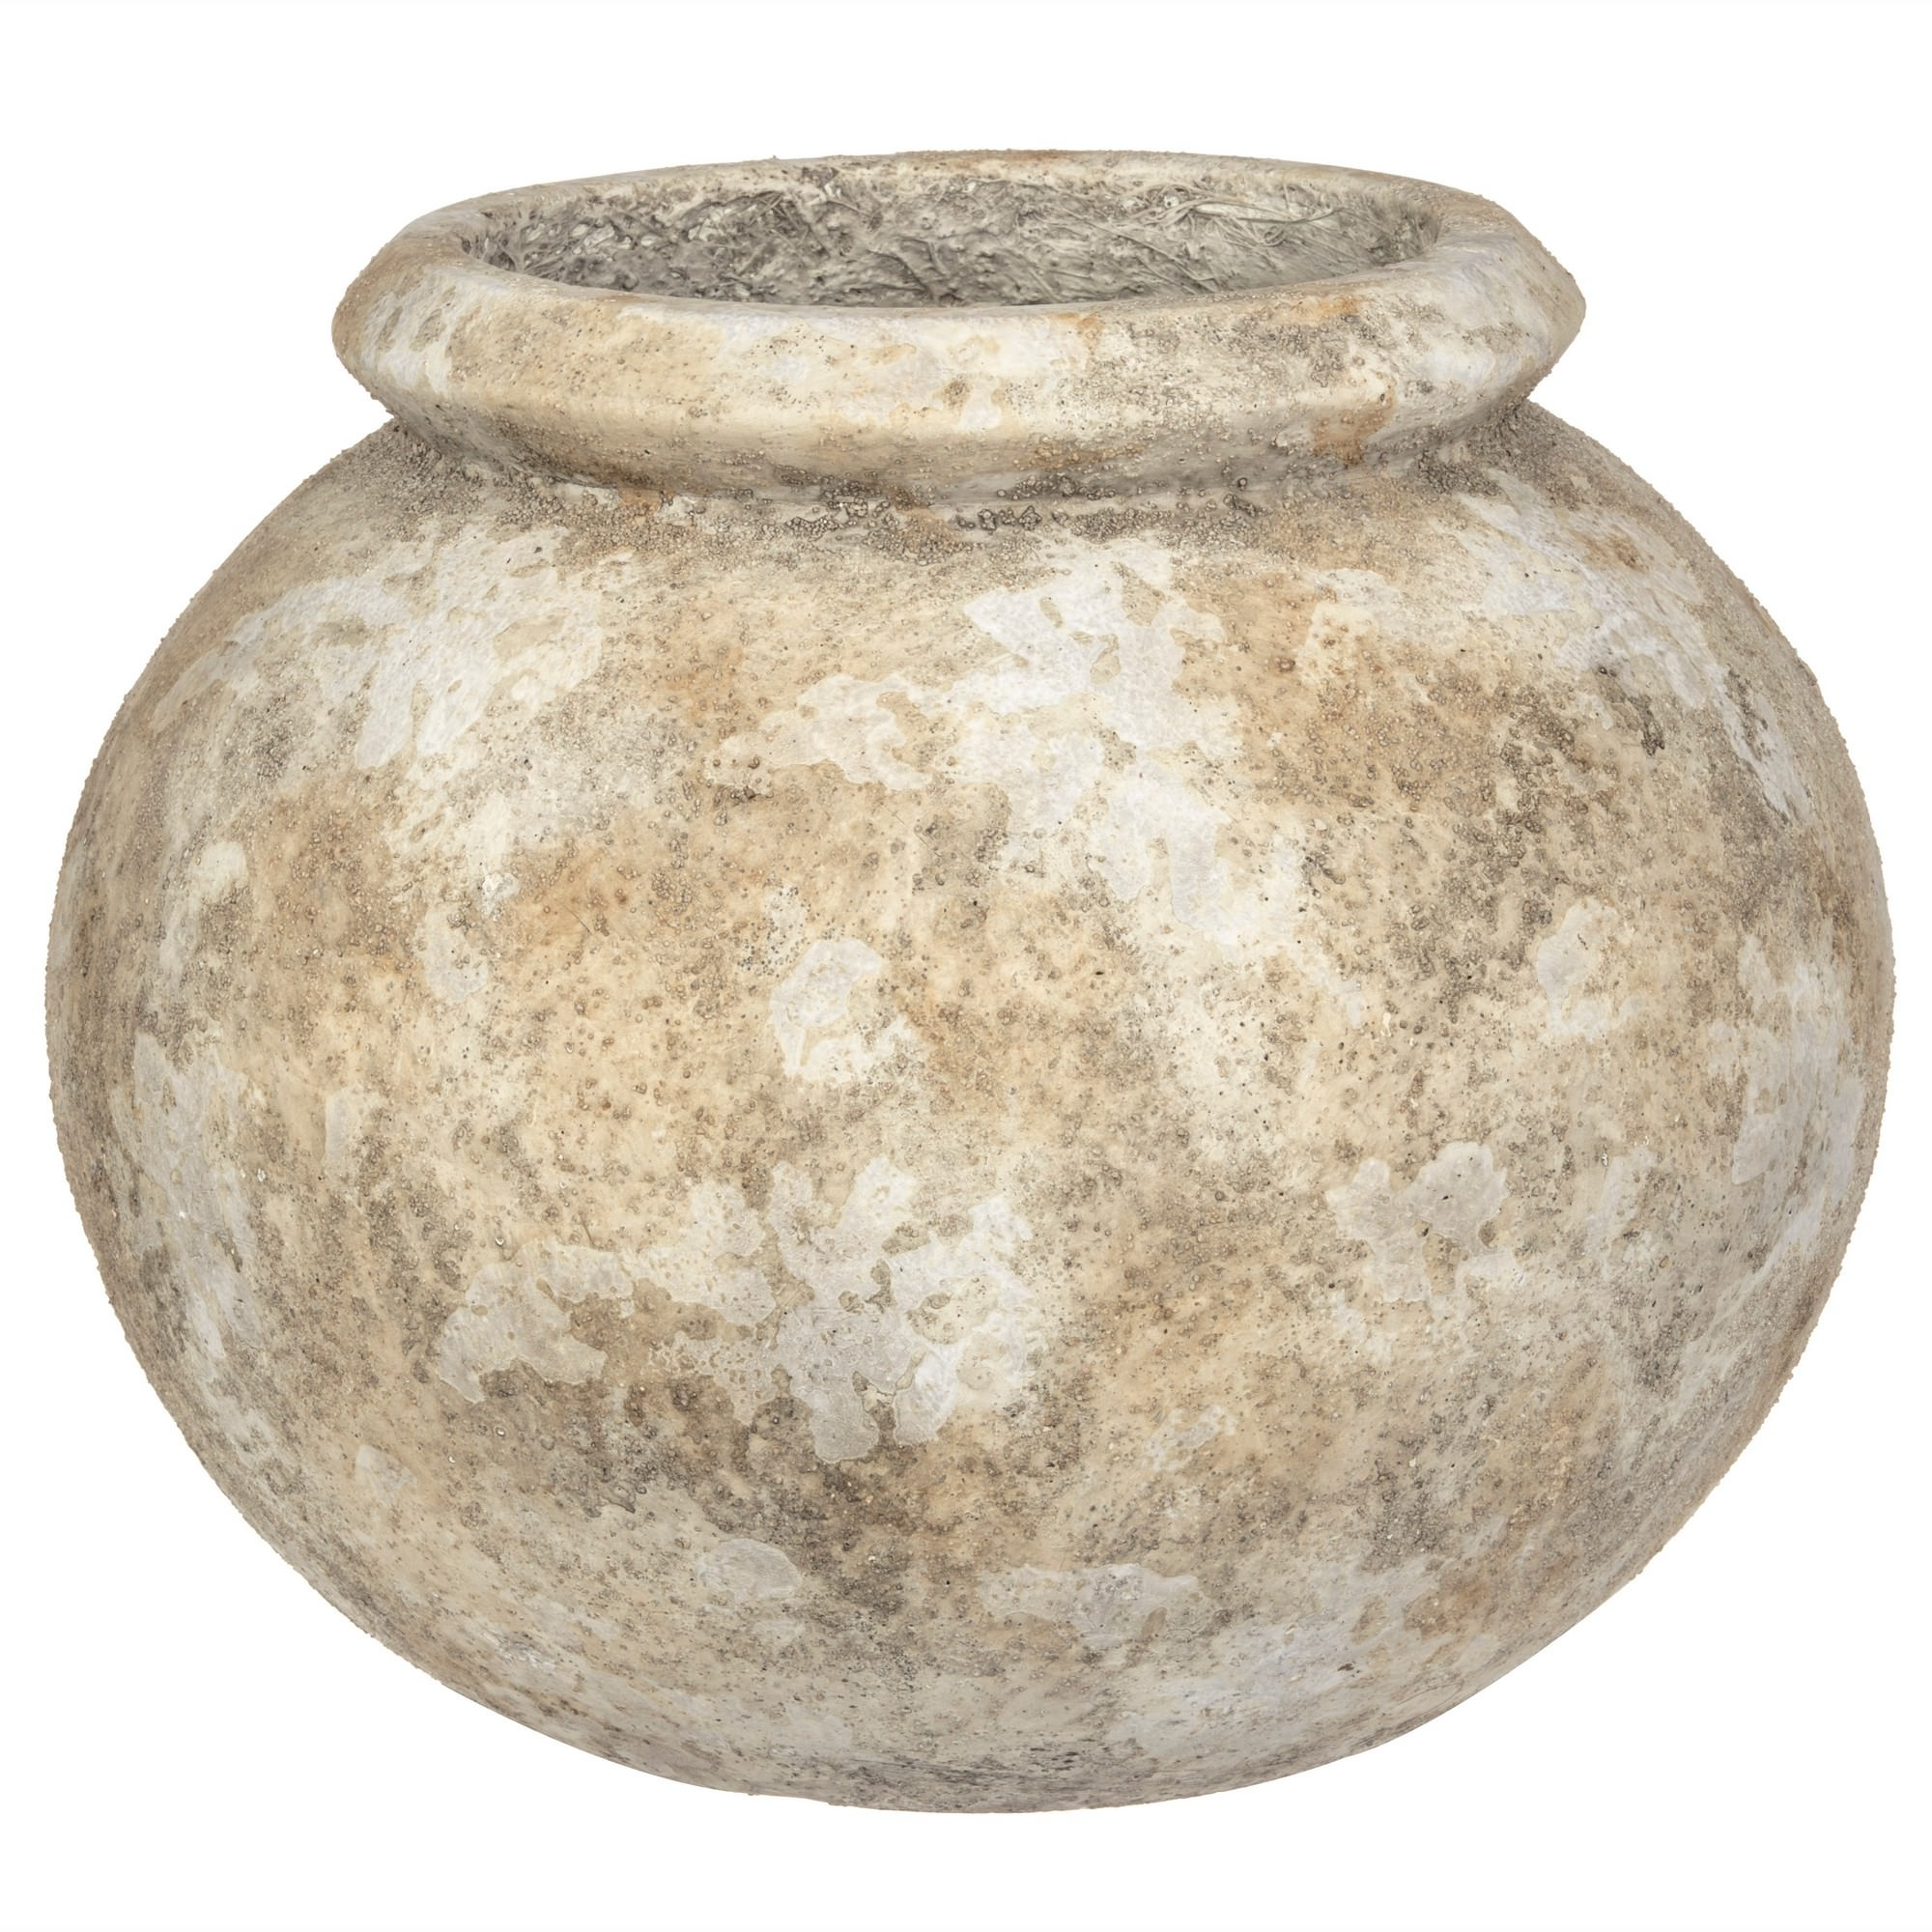 Carlos Cement Bell Planter, Large